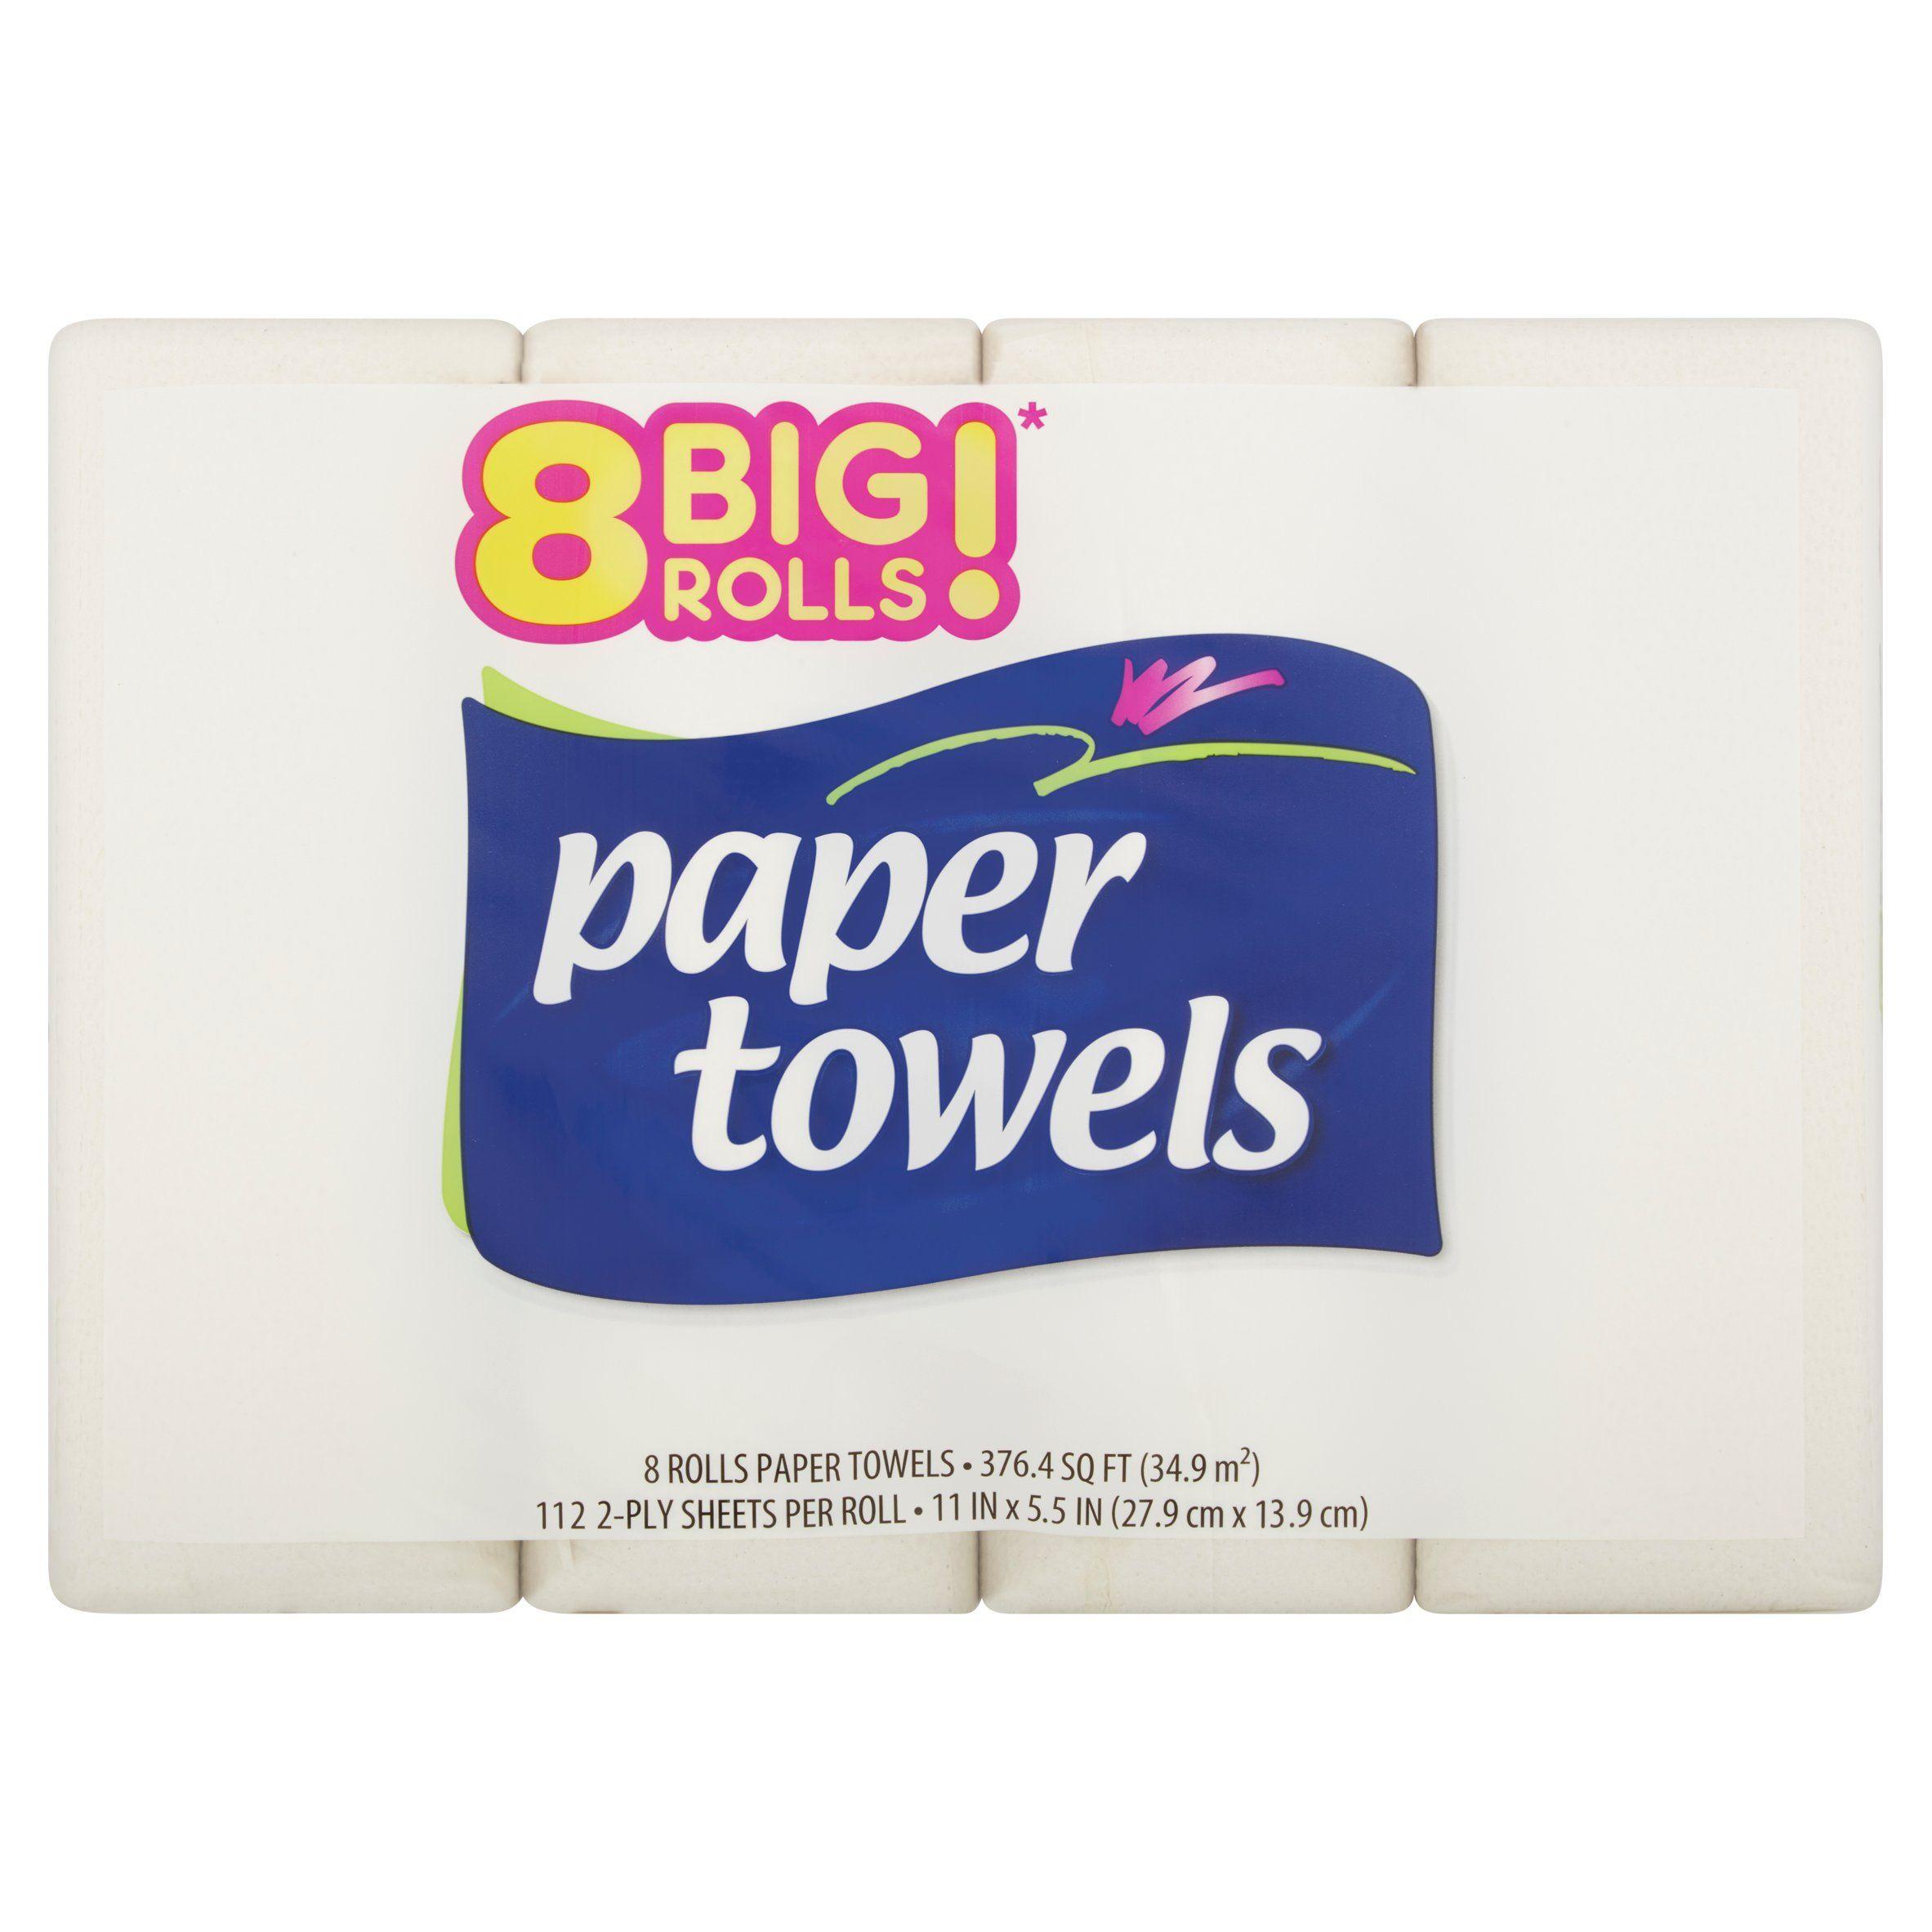 Strong & Absorbent Big Roll Paper Towels, 112 sheets, 8